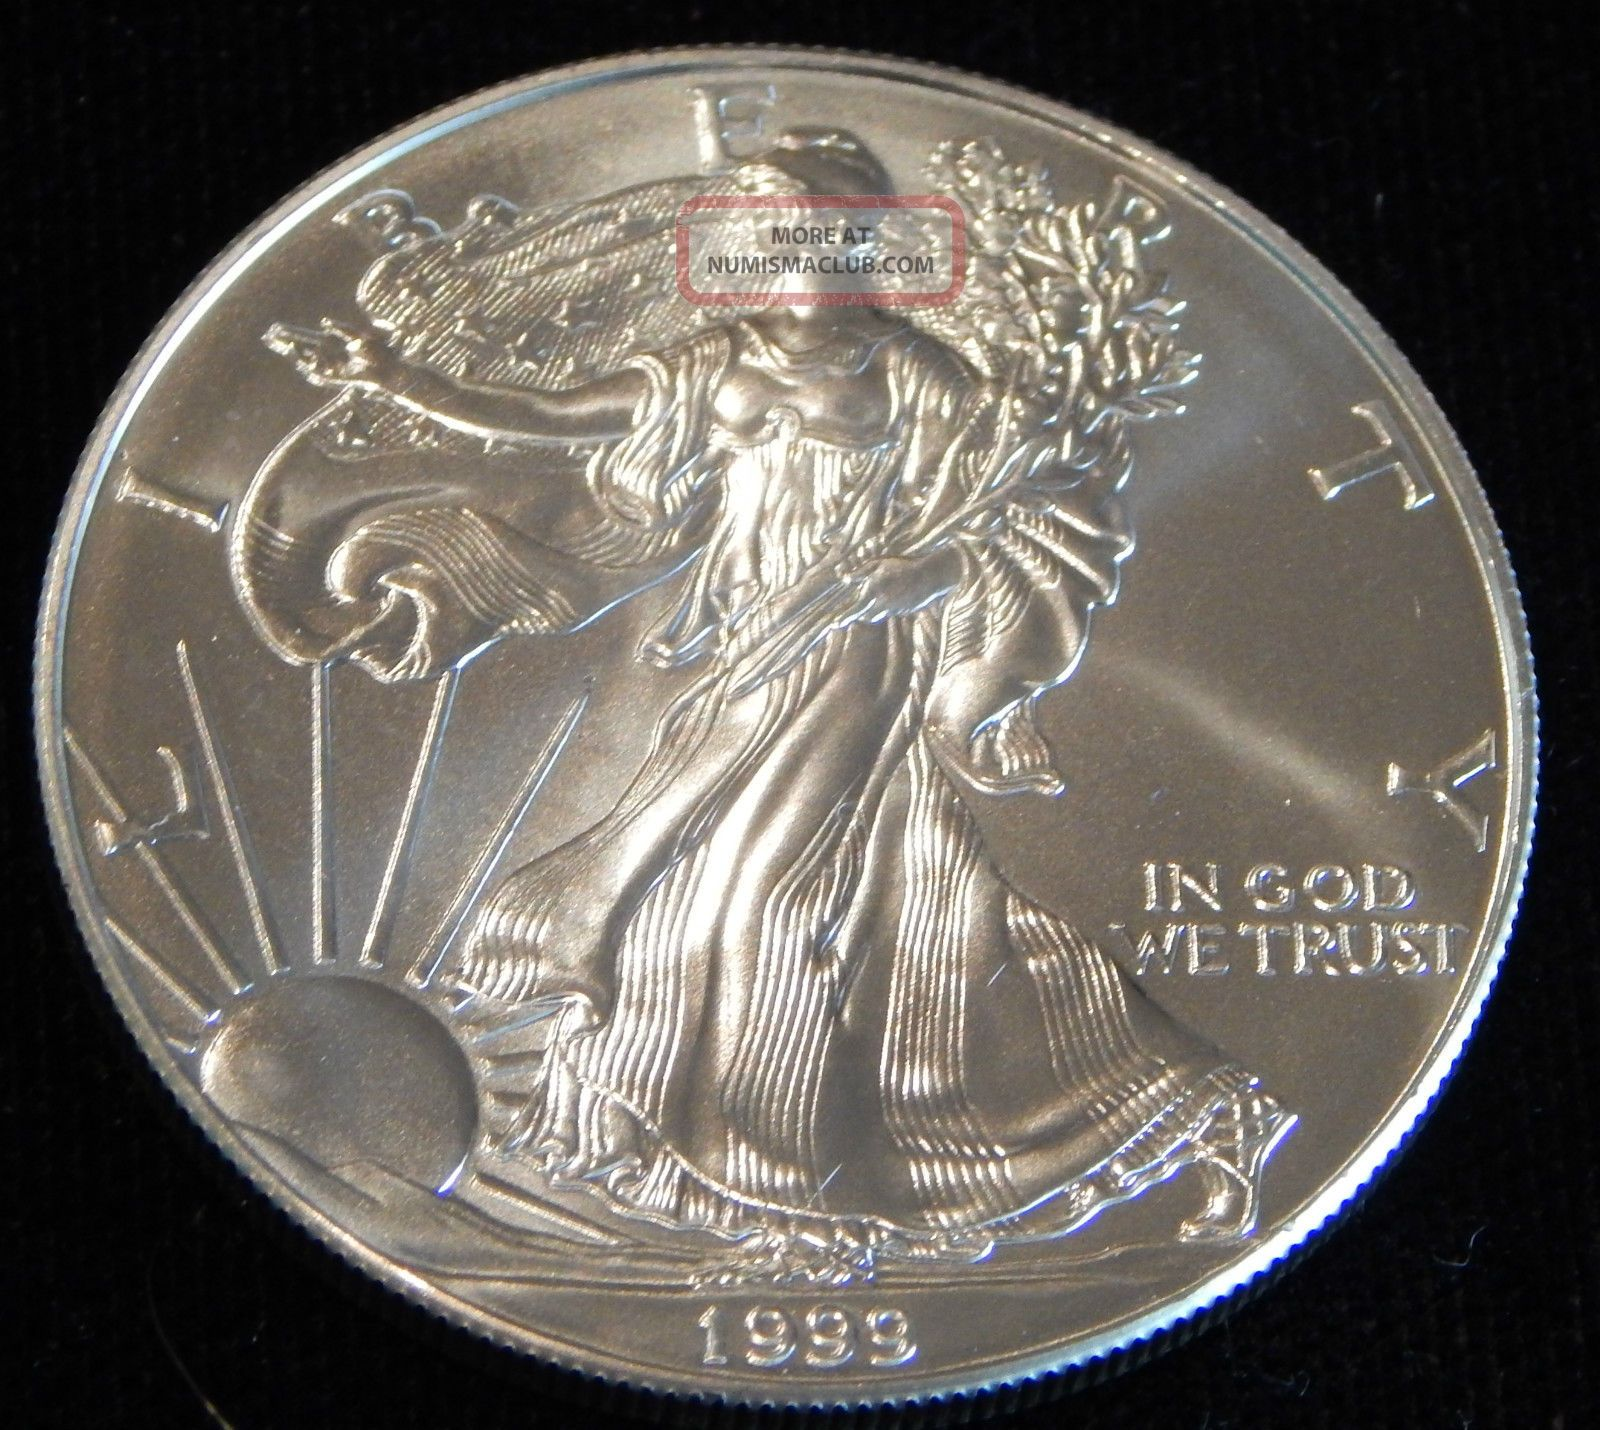 1999 American Silver Eagle Bullion Coin Rare Key Date